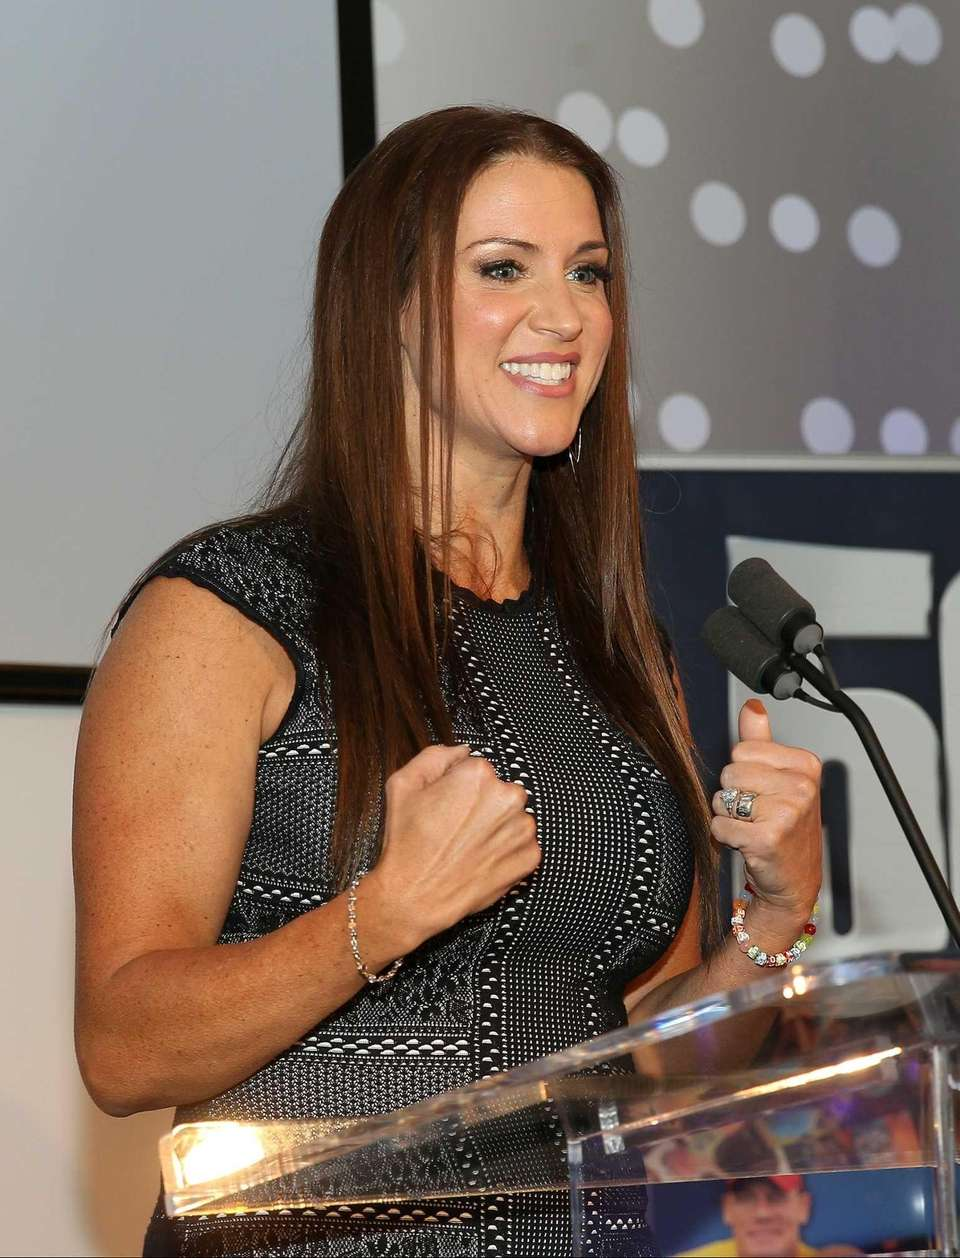 Stephanie McMahon was born on Sept. 24, 1976.